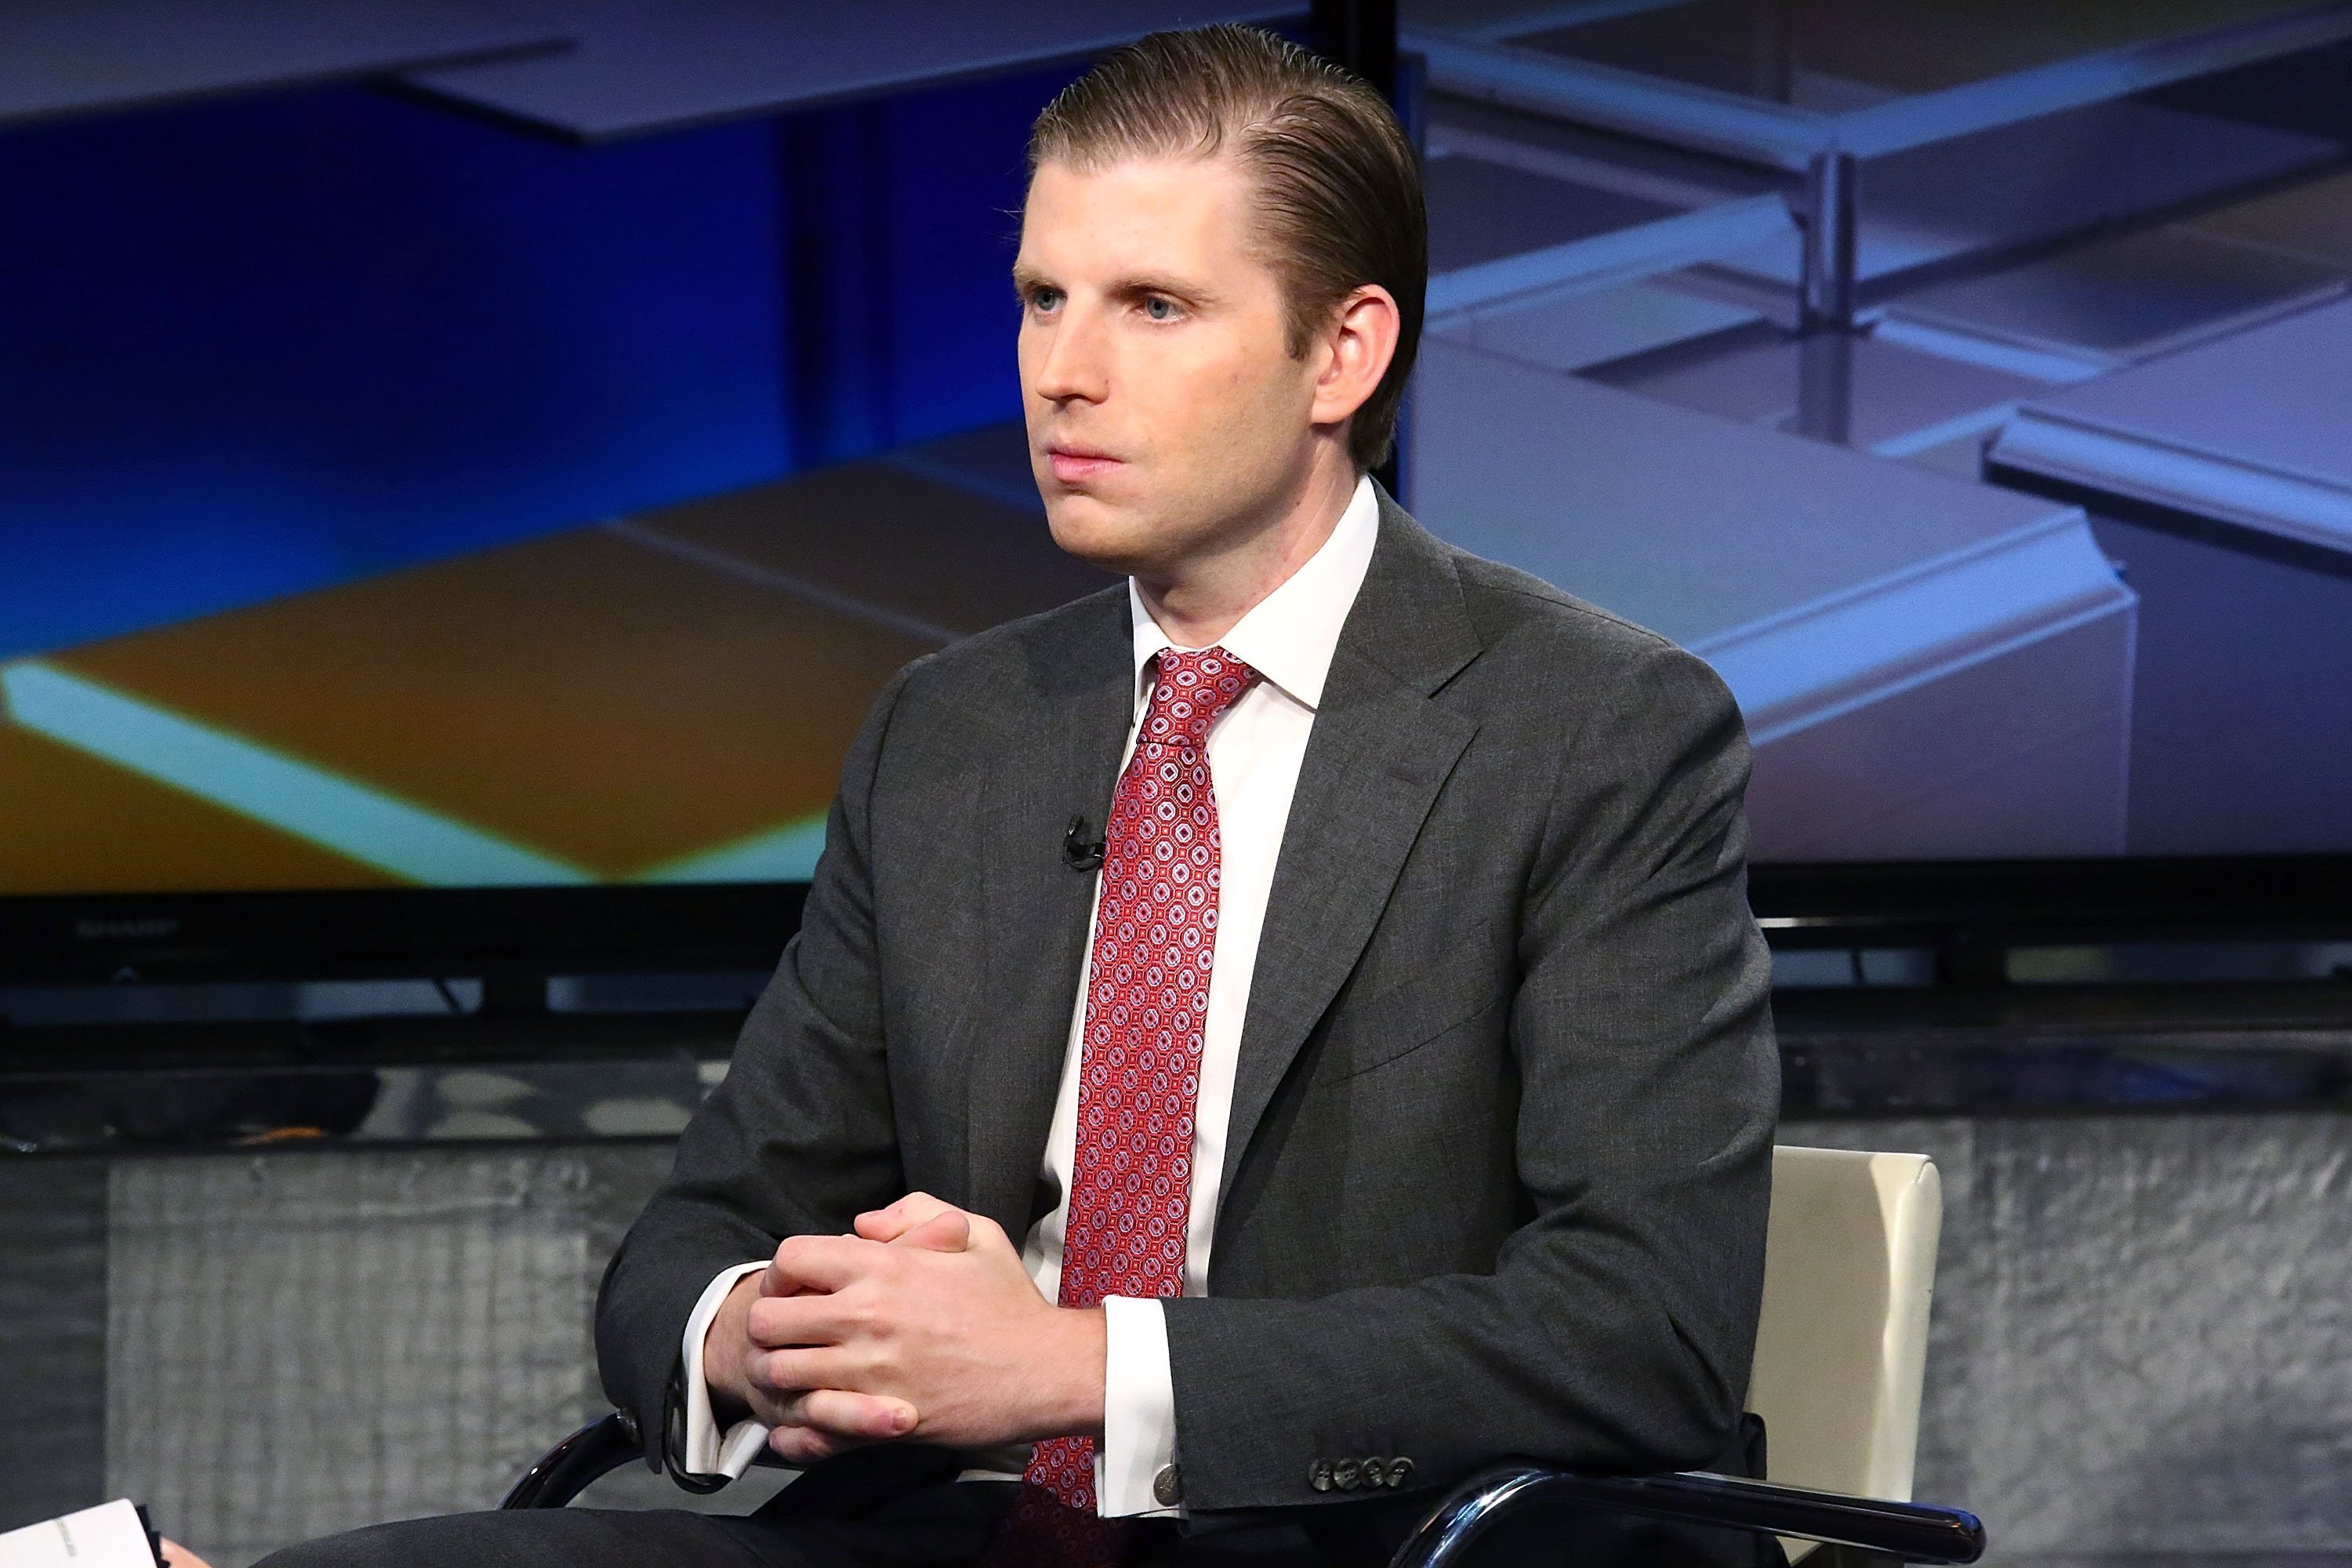 Eric Trump at FOX Business Network's Maria Bartiromo at FOX Studios on October 4, 2016 in New York City | Photo: Getty Images